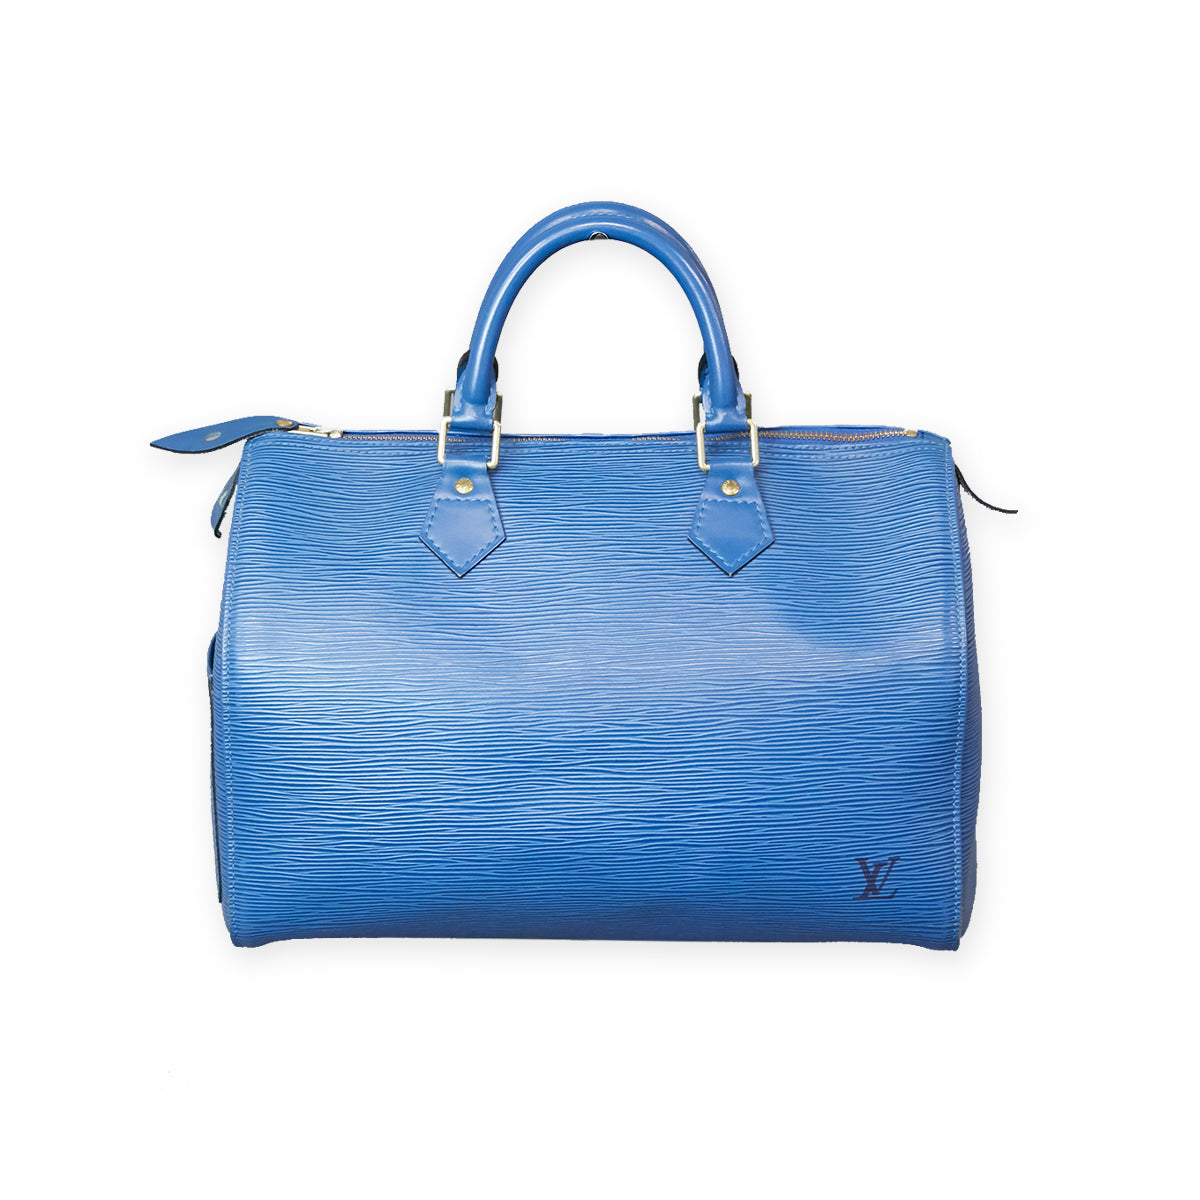 LOUIS VUITTON Epi Speedy 30 Blue